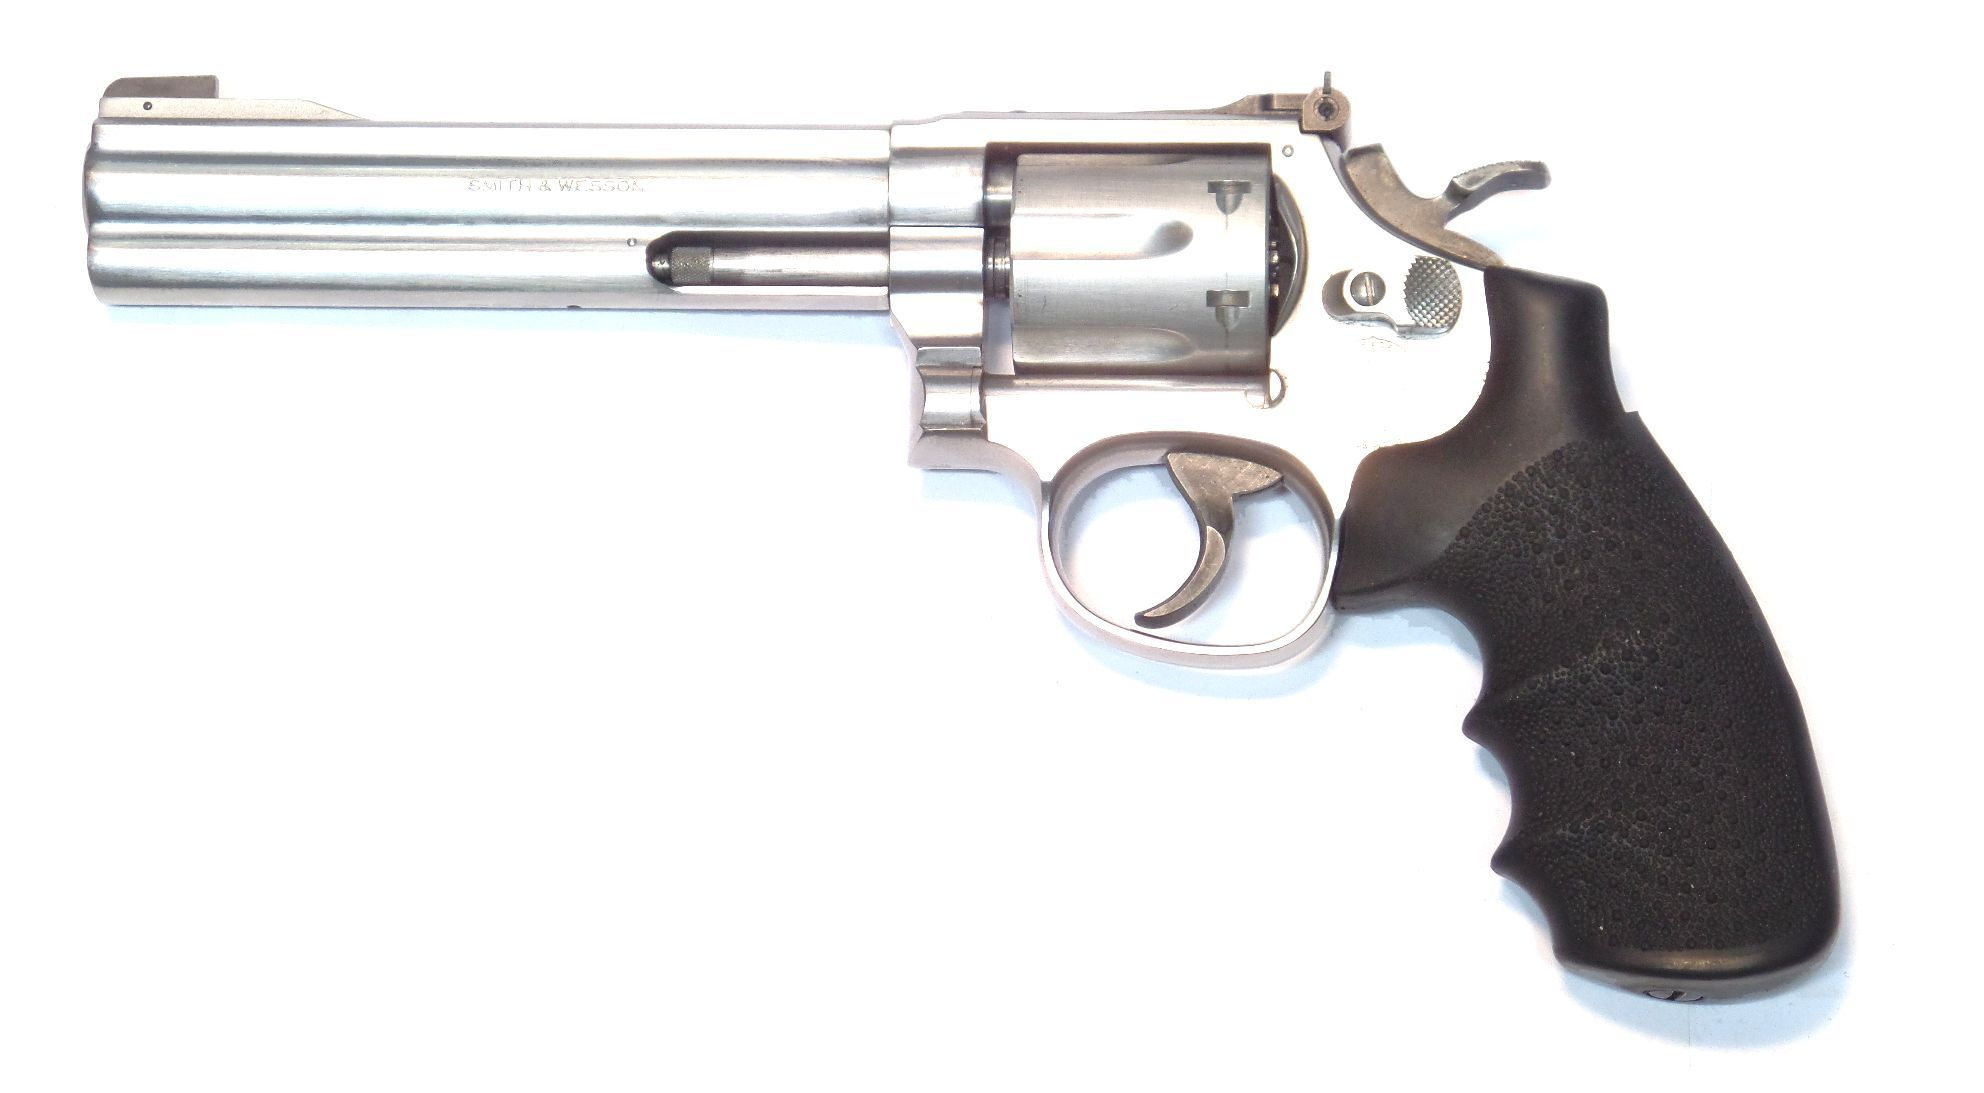 Smith & Wesson Modèle 617-1 calibre 22LR